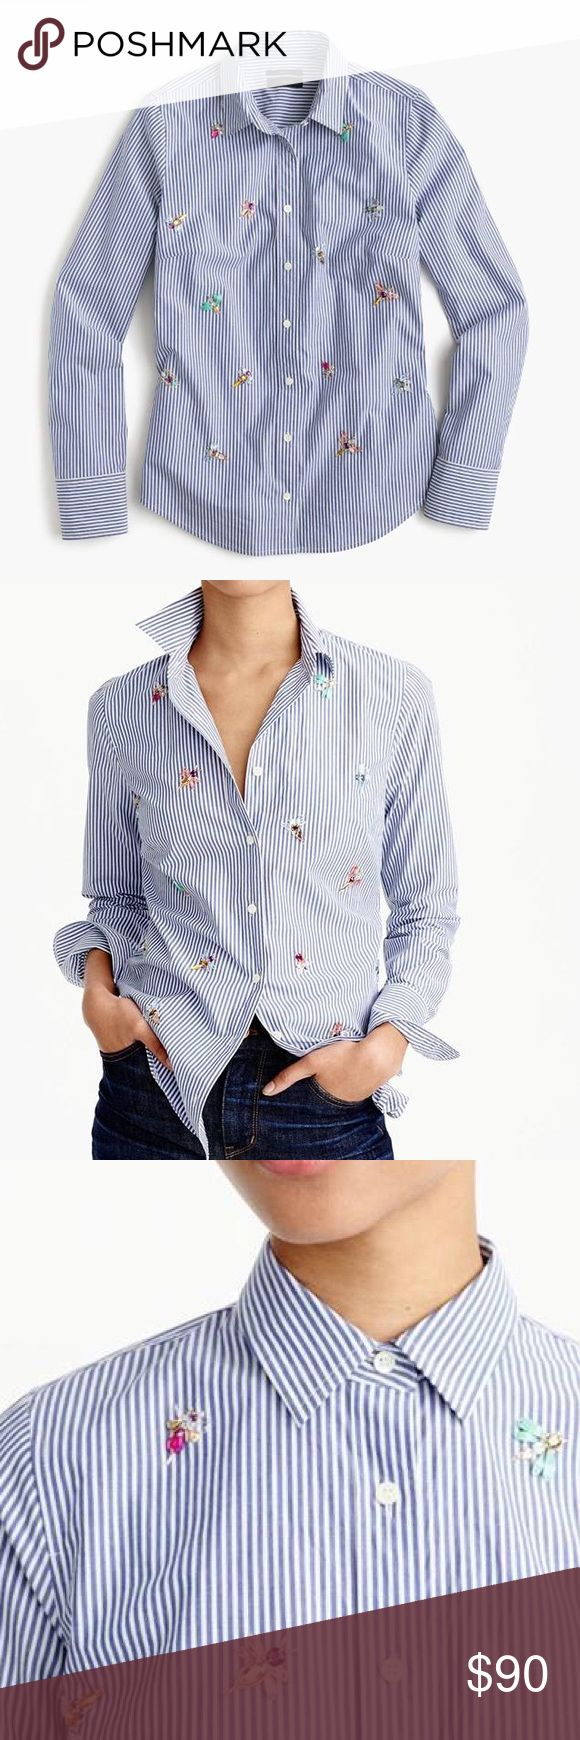 J Crew prefect shirt with bee embellishment J Crew prefect striped shirt with bee embellishment.        Features precisely placed darts for a slimming, waist-defining fit that's more tailored and polished.                          Hand-embellished bees for a quirky, perfectly J.Crew take.  SOLD OUT!   ·        Cotton. ·        Long roll-up sleeves. ·        Functional buttons at cuffs. ·        Button placket. BRAND NEW WITH TAGS. SZ 2 J. Crew Tops Button Down Shirts